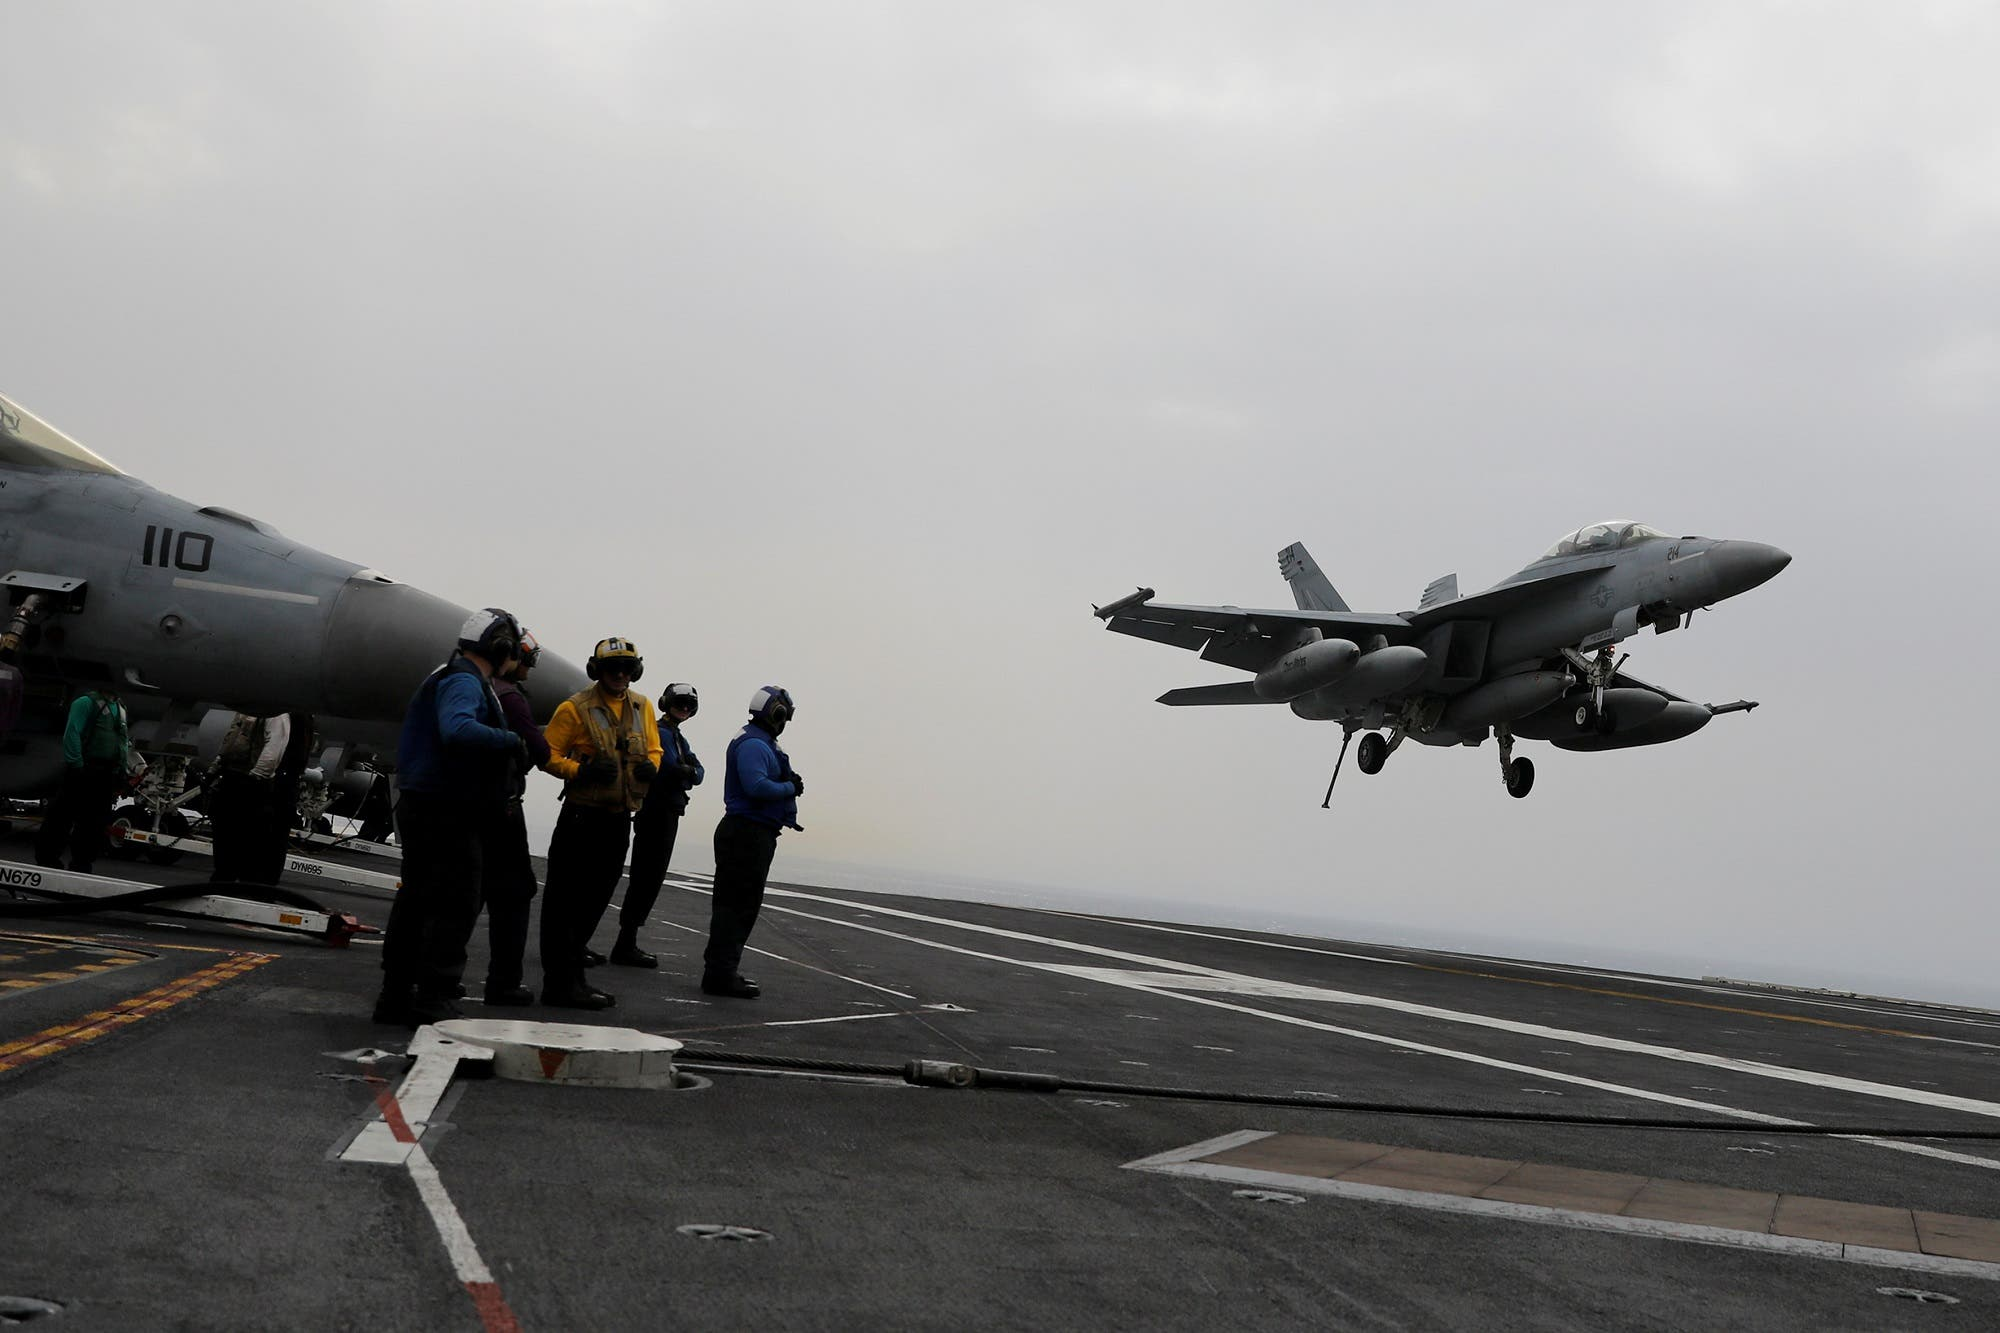 A Navy F/A-18 pilot gestures before taking off from the USS Harry S. Truman aircraft carrier. (Reuters)